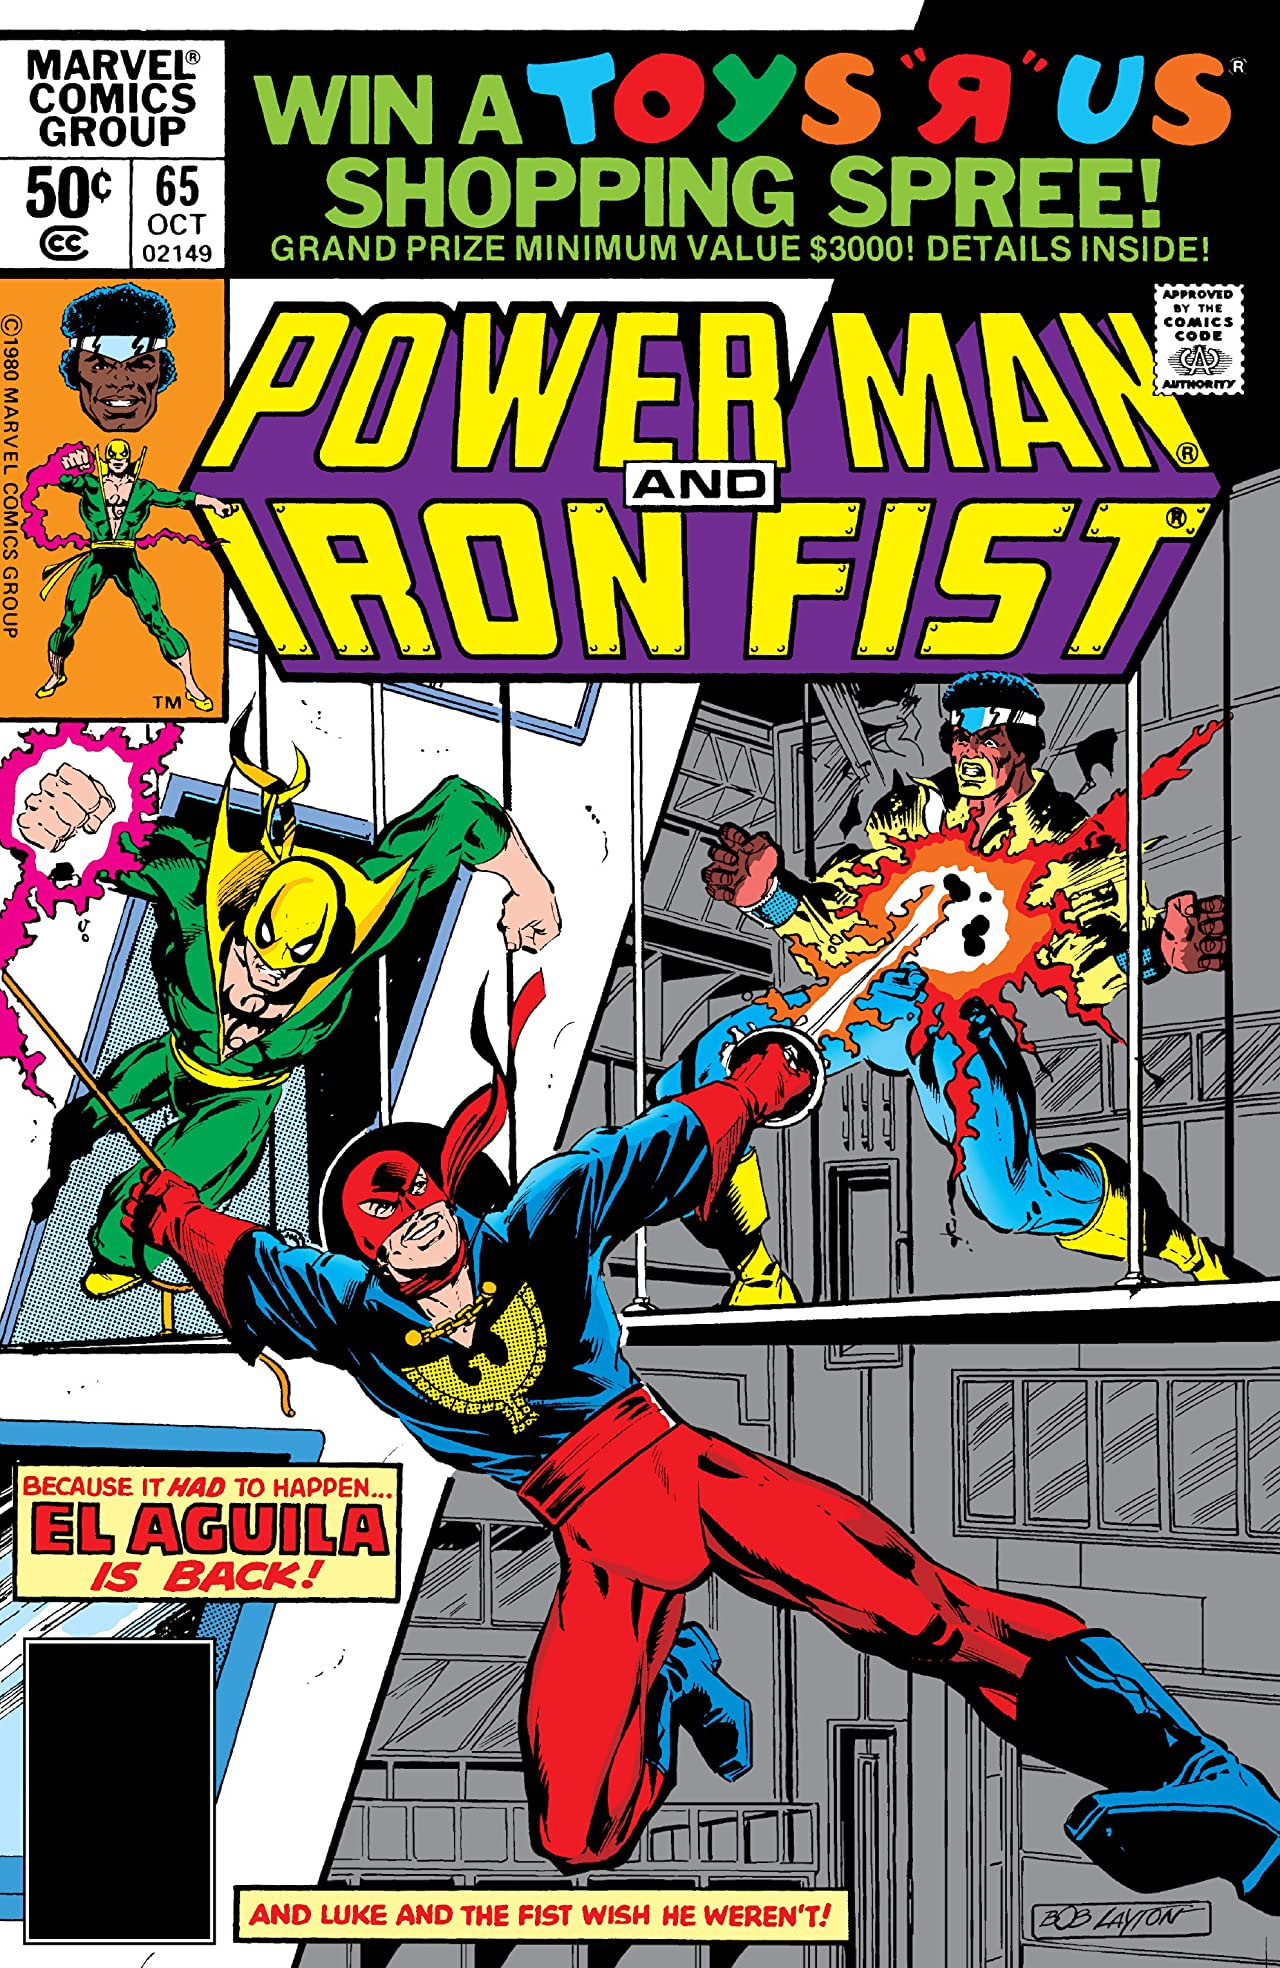 Power Man and Iron Fist Vol 1 65